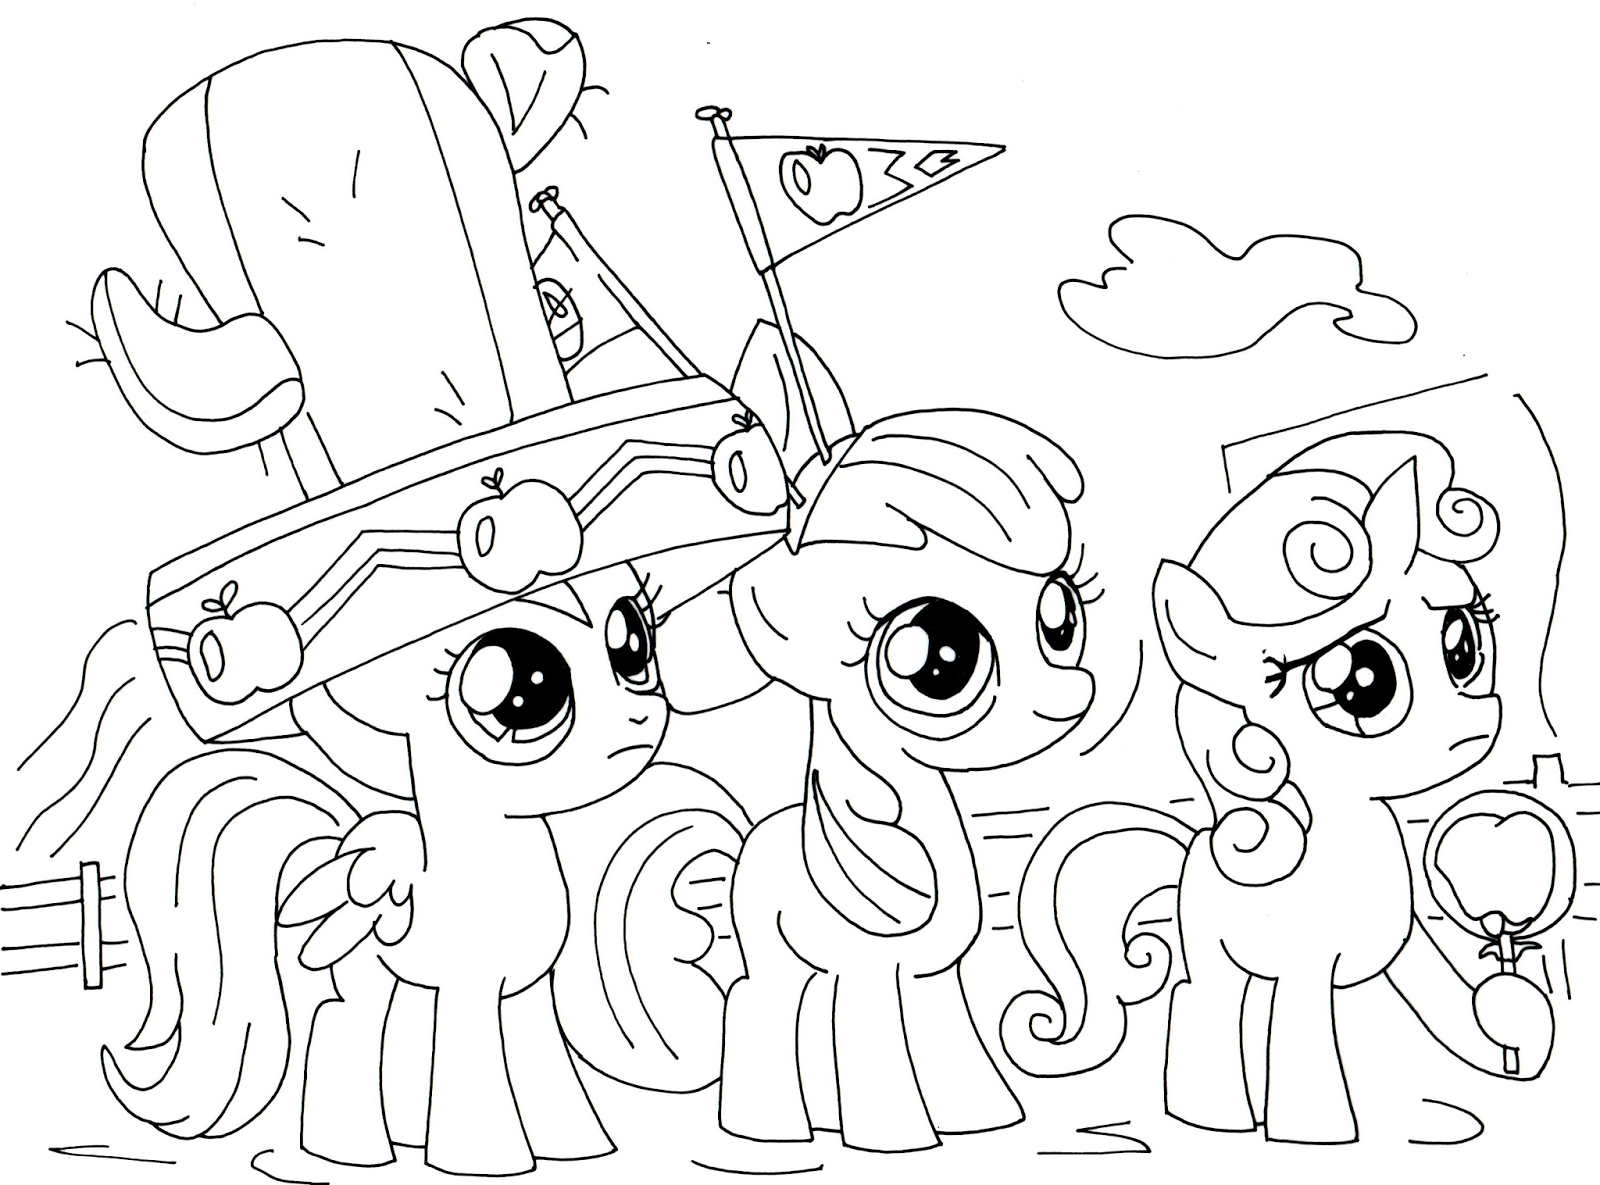 My Little Pony Coloring Pages Hd : Applejack my little pony coloring pages home